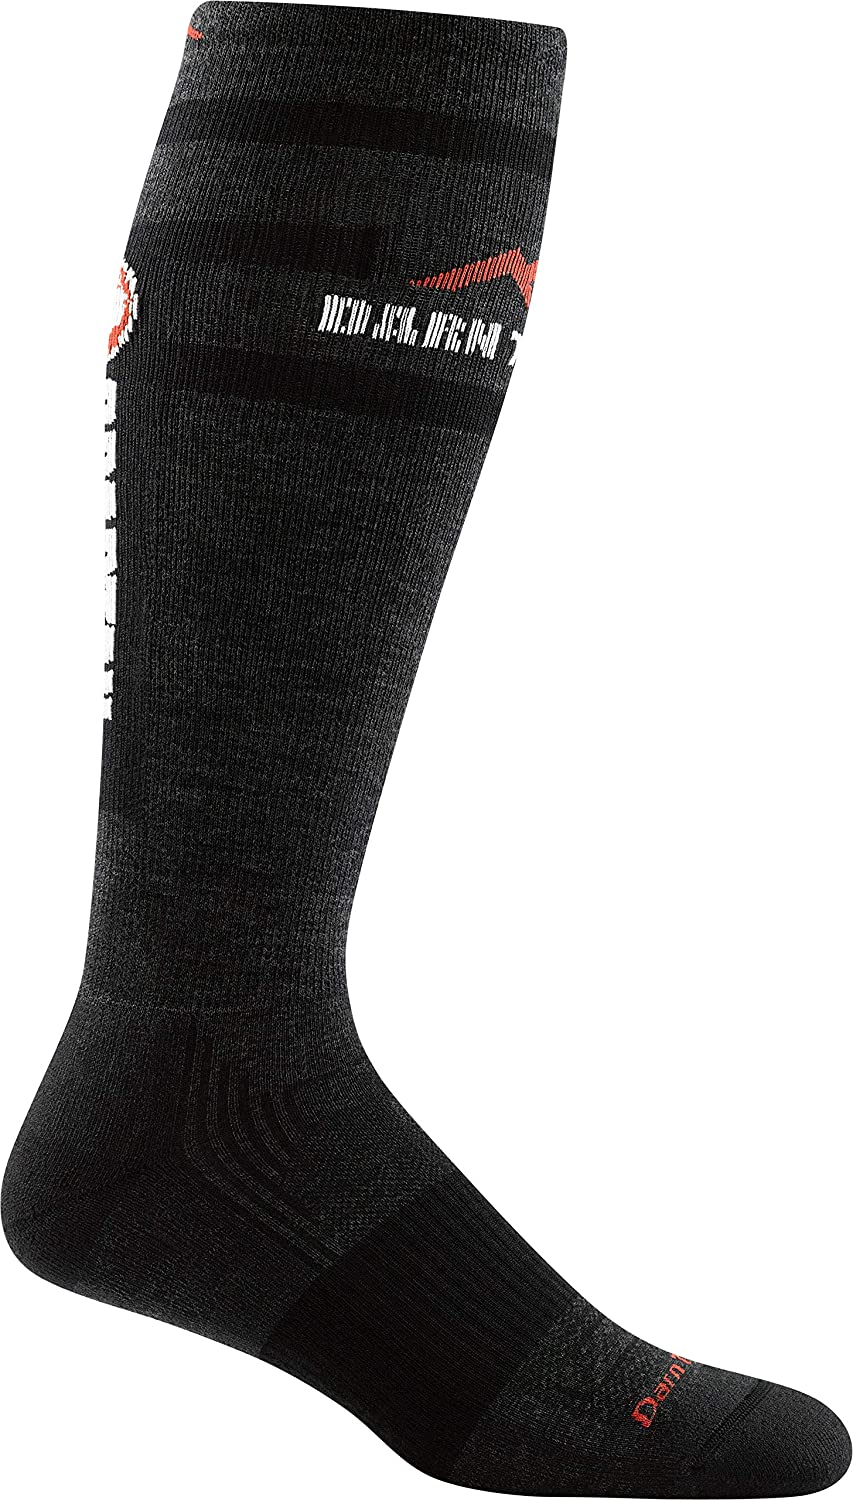 Darn Tough Spartan Over The Calf Light Cushion Sock  Women's